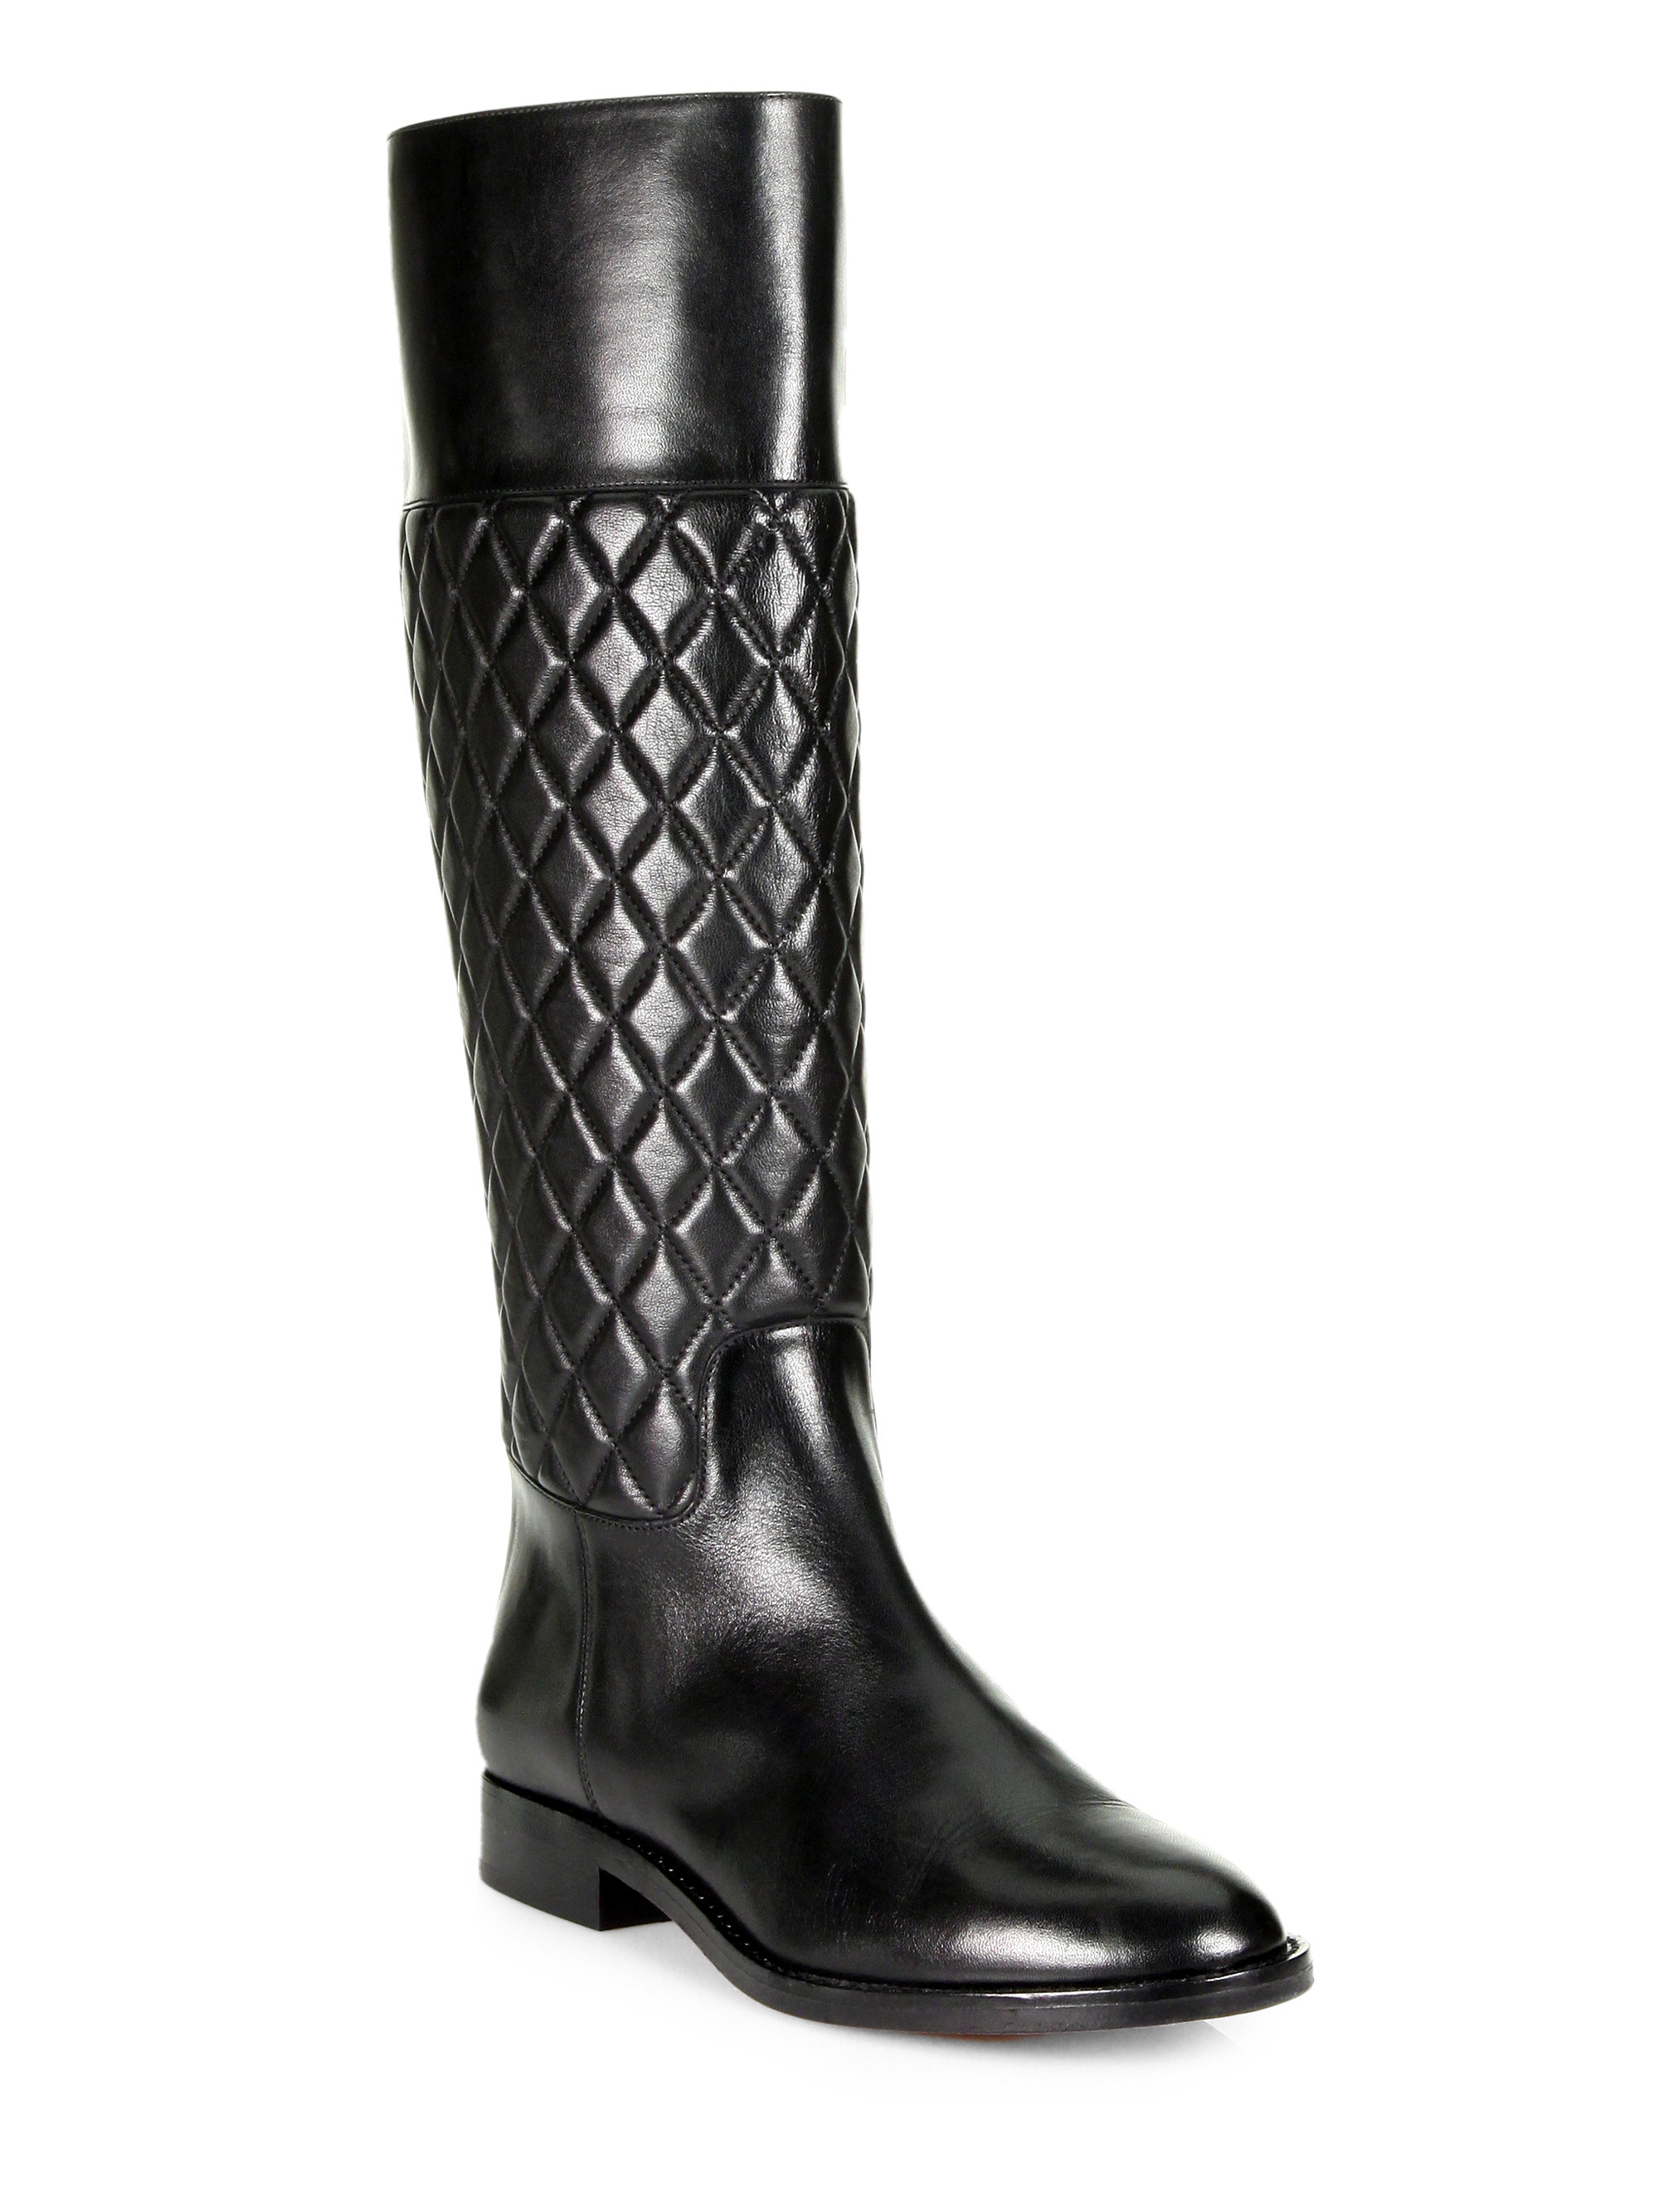 410dc9990 Michael Kors Mina Quilted Leather Riding Boots in Black - Lyst